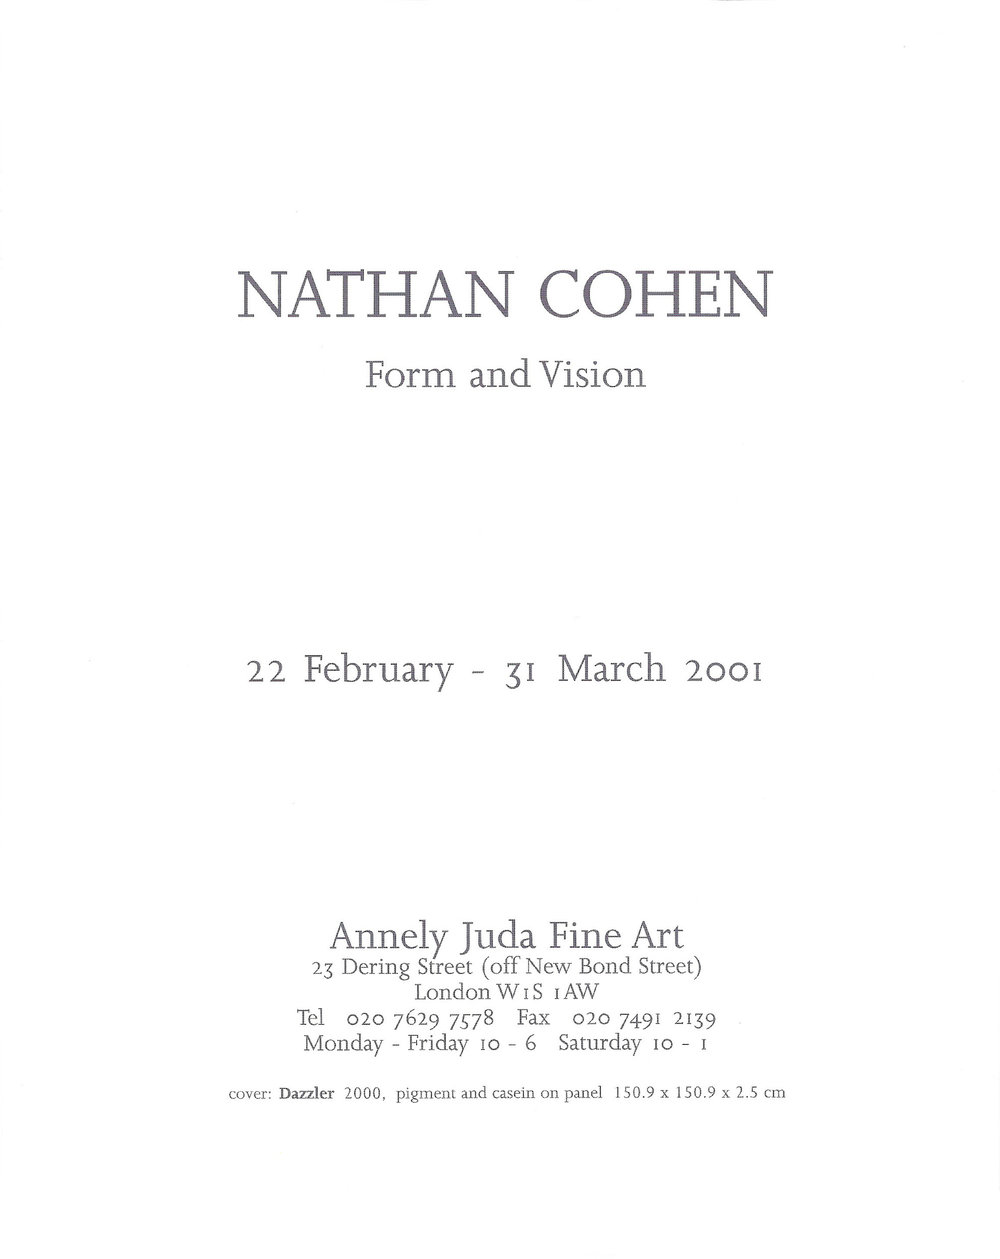 NATHAN COHEN ANNELY JUDA 2001 CATALOGUE 2.jpg